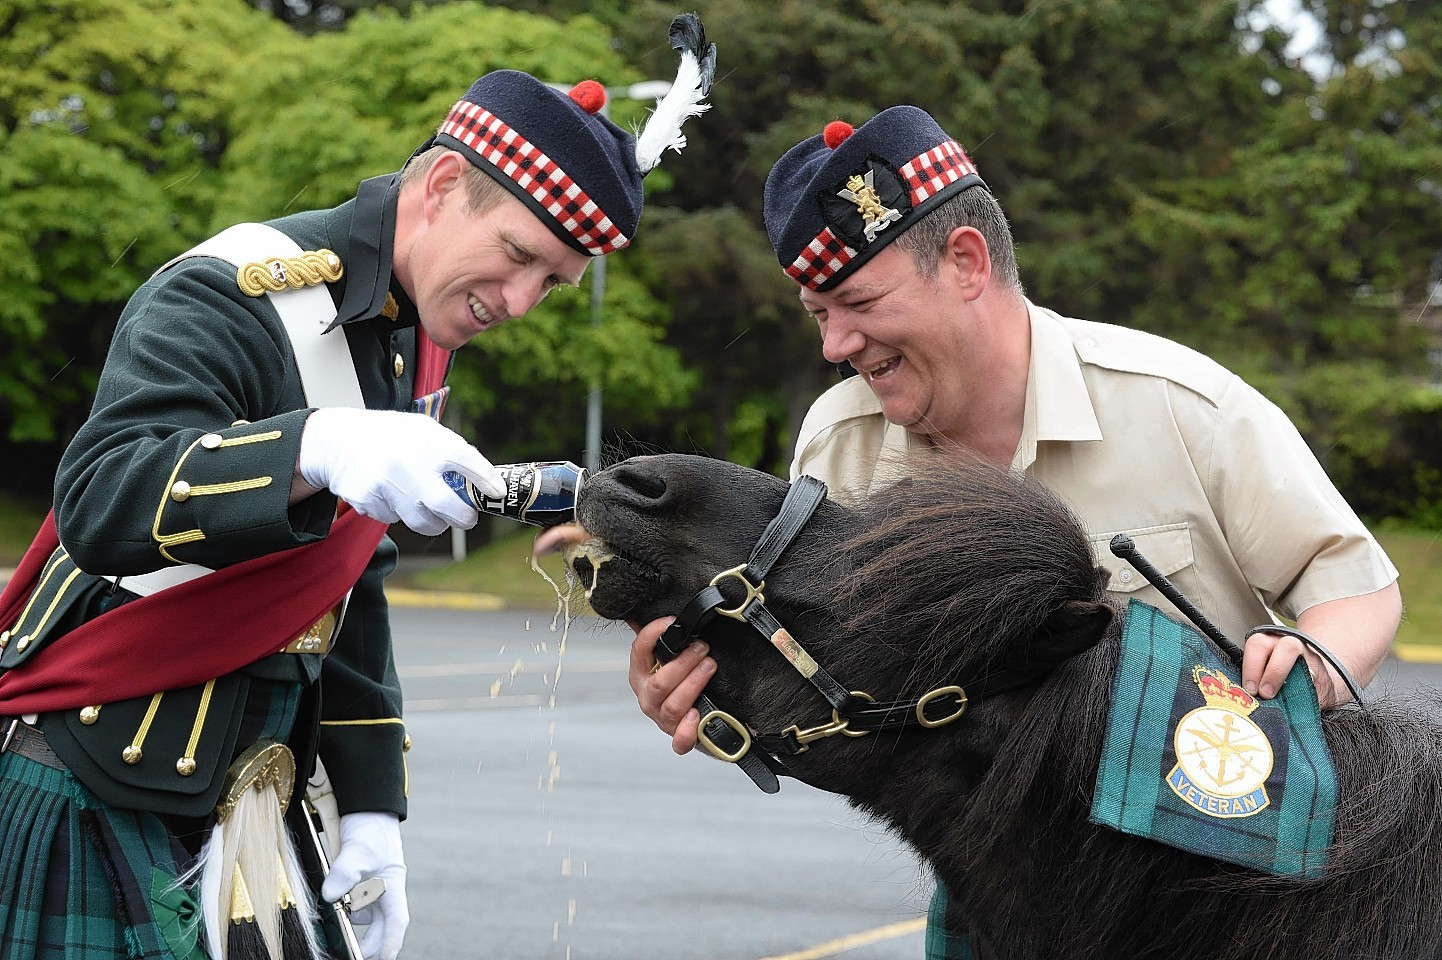 Major Oliver Dobson (L) and Pony Major Corporal Mark Wilkinson give Cruachan III a well deserved treat, a can of his favourite beer after the  presentation in Edinburgh